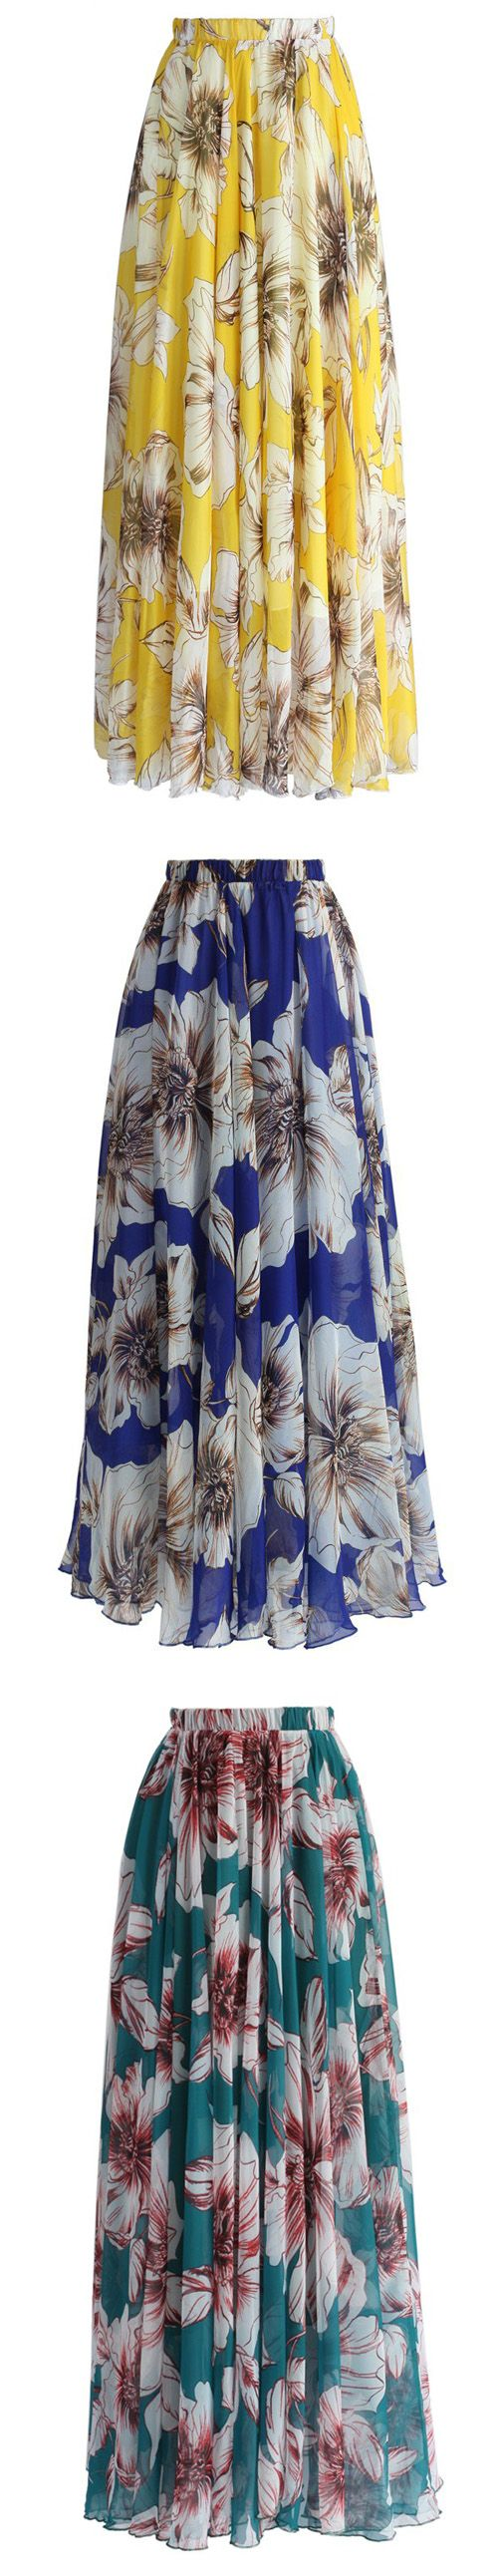 Marvel at the bold floral print of this gossamer maxi frock, you adore your reflection in this skirt as much as you love summer time! Swirl in it with a trendy off-shoulder top or cami, your summer vacation is in countdown!